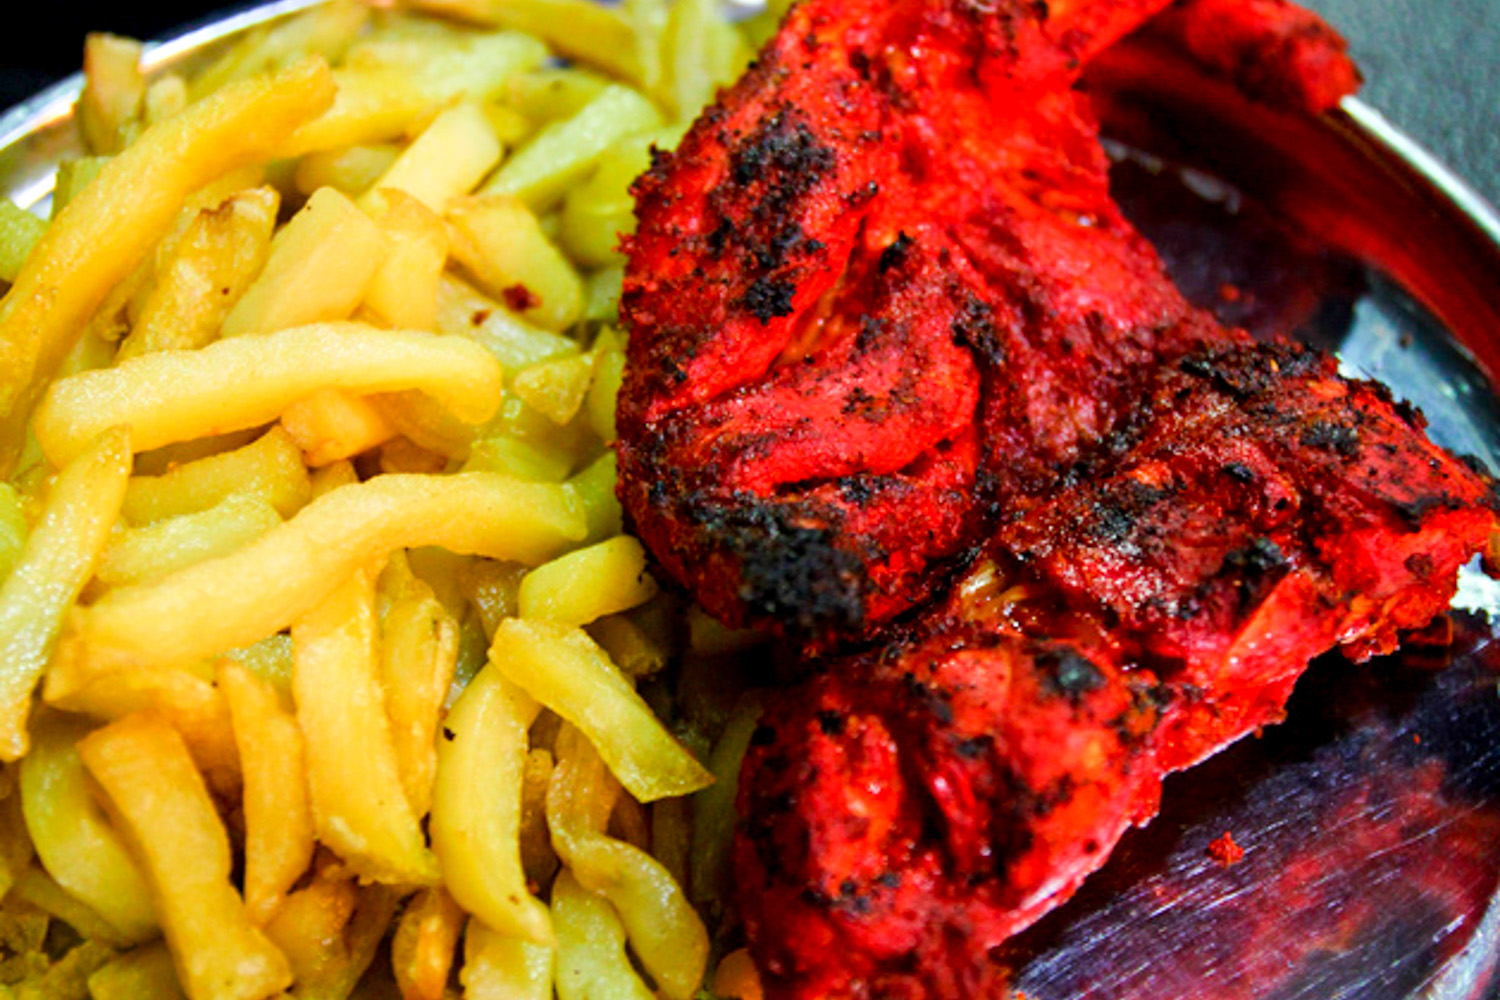 Similar to the South Asian Chicken Tikka, Sekela Chicken is available at every street corner and Dar-es-Salaam.